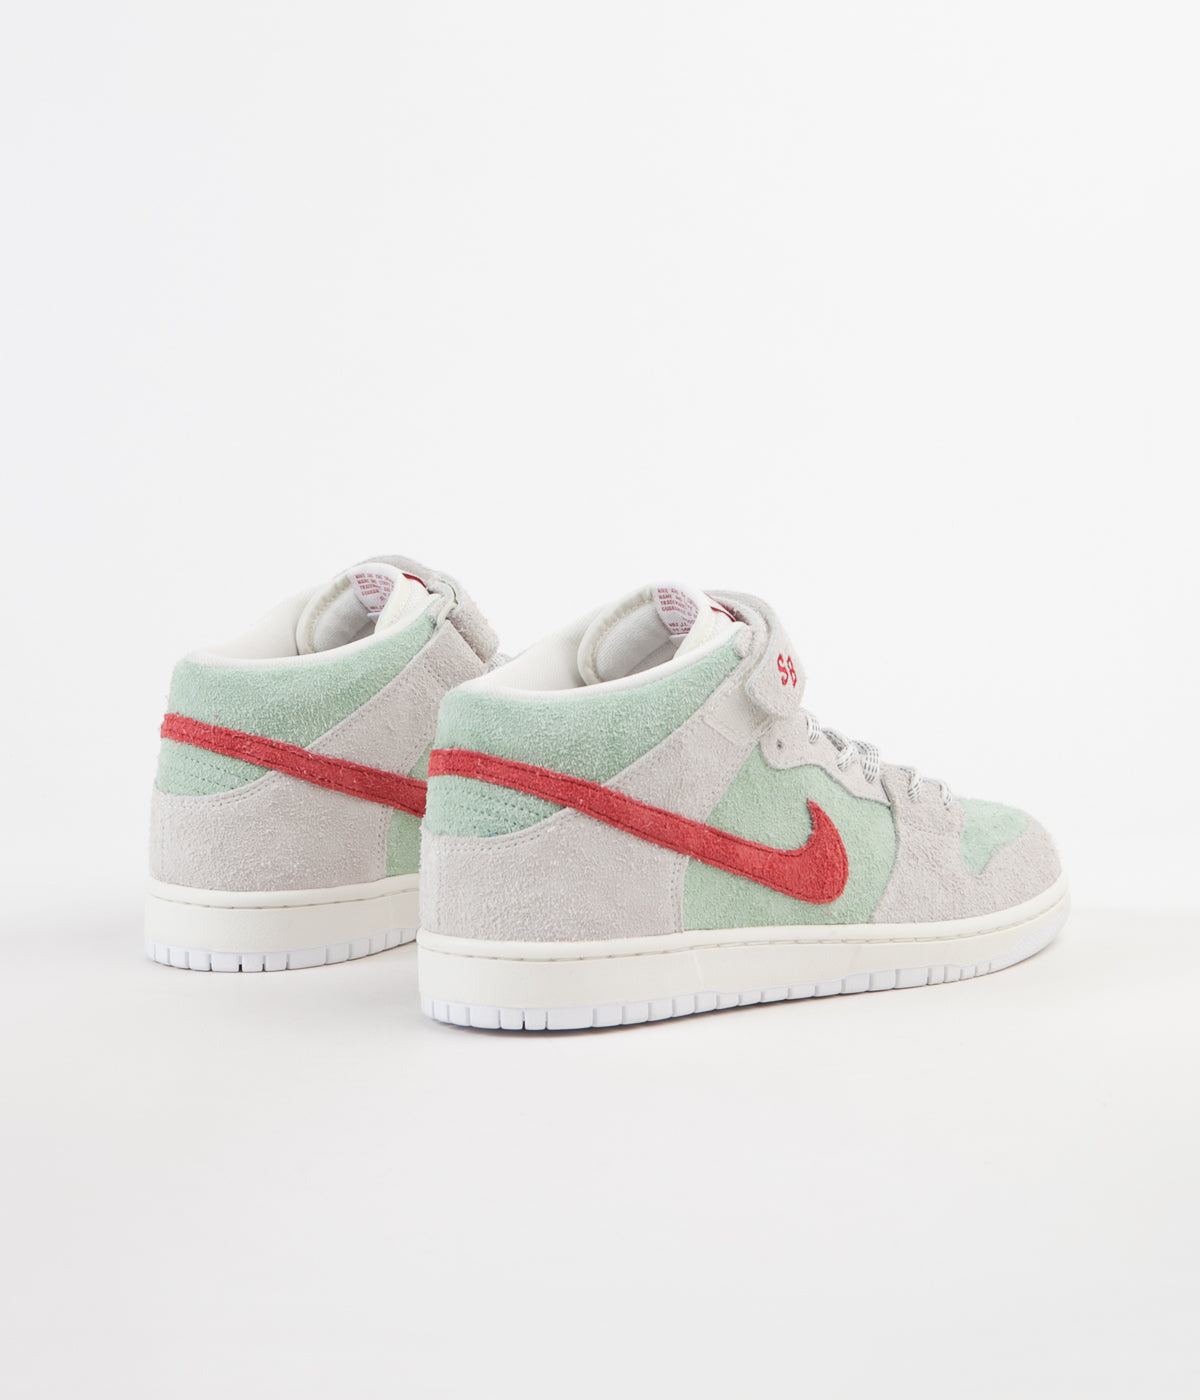 online store 39e06 b7910 ... nike sb dunk mid pro white widow shoes sail gym red